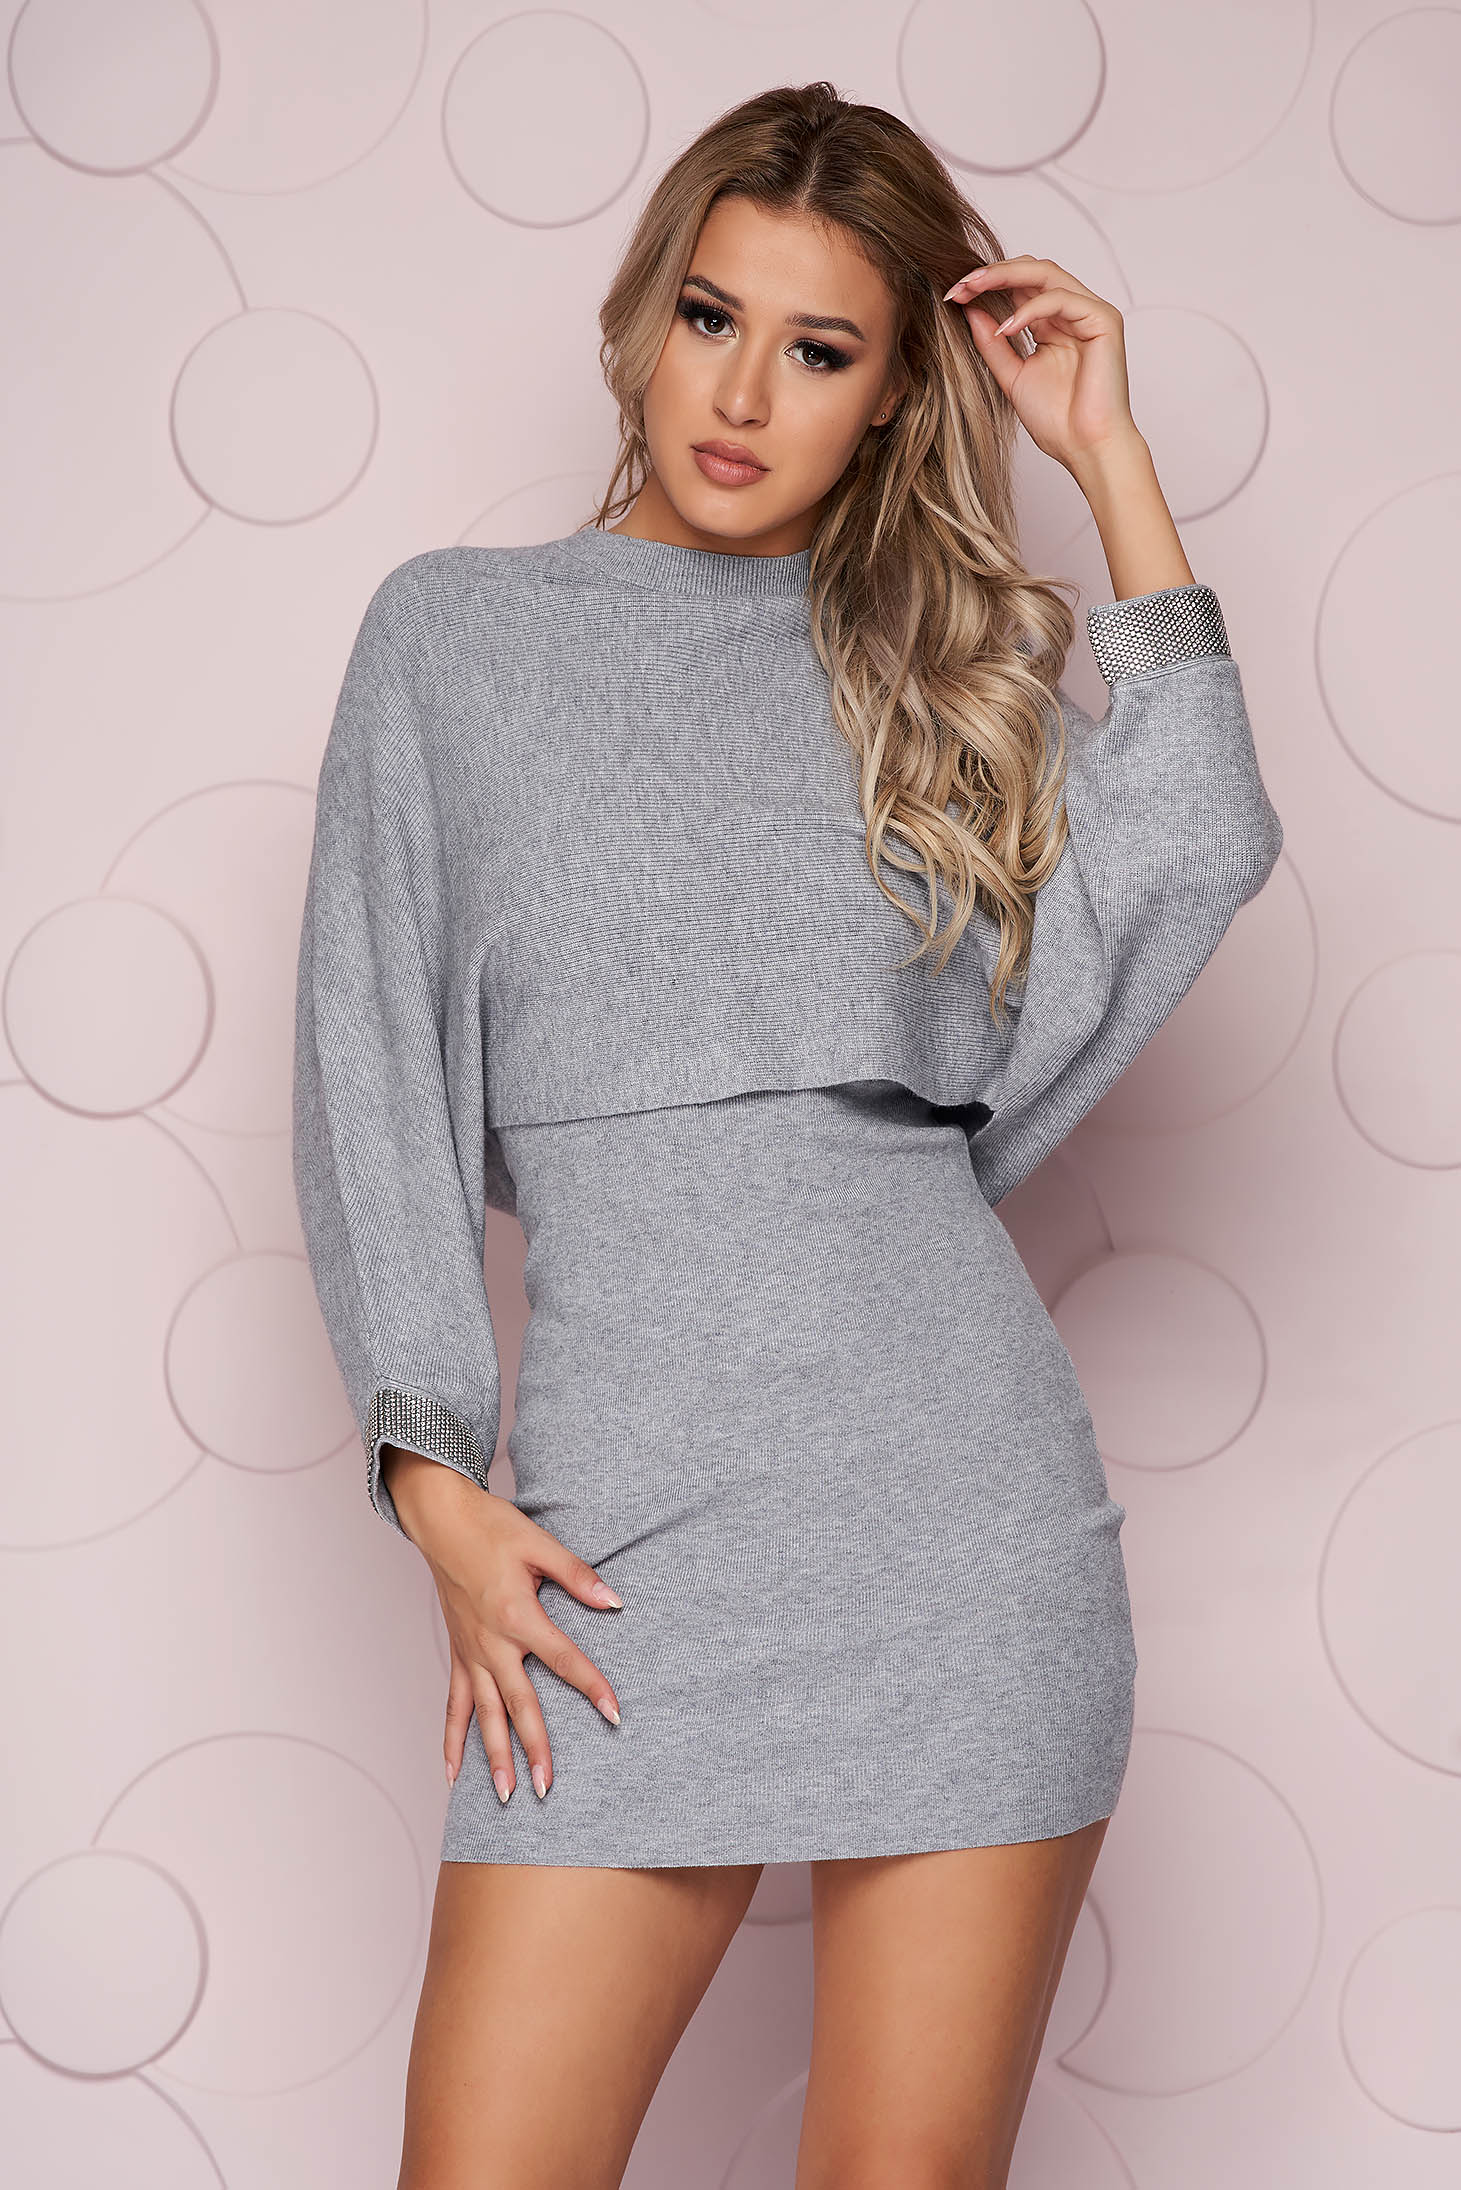 Grey dress with crystal embellished details knitted from elastic fabric long sleeve